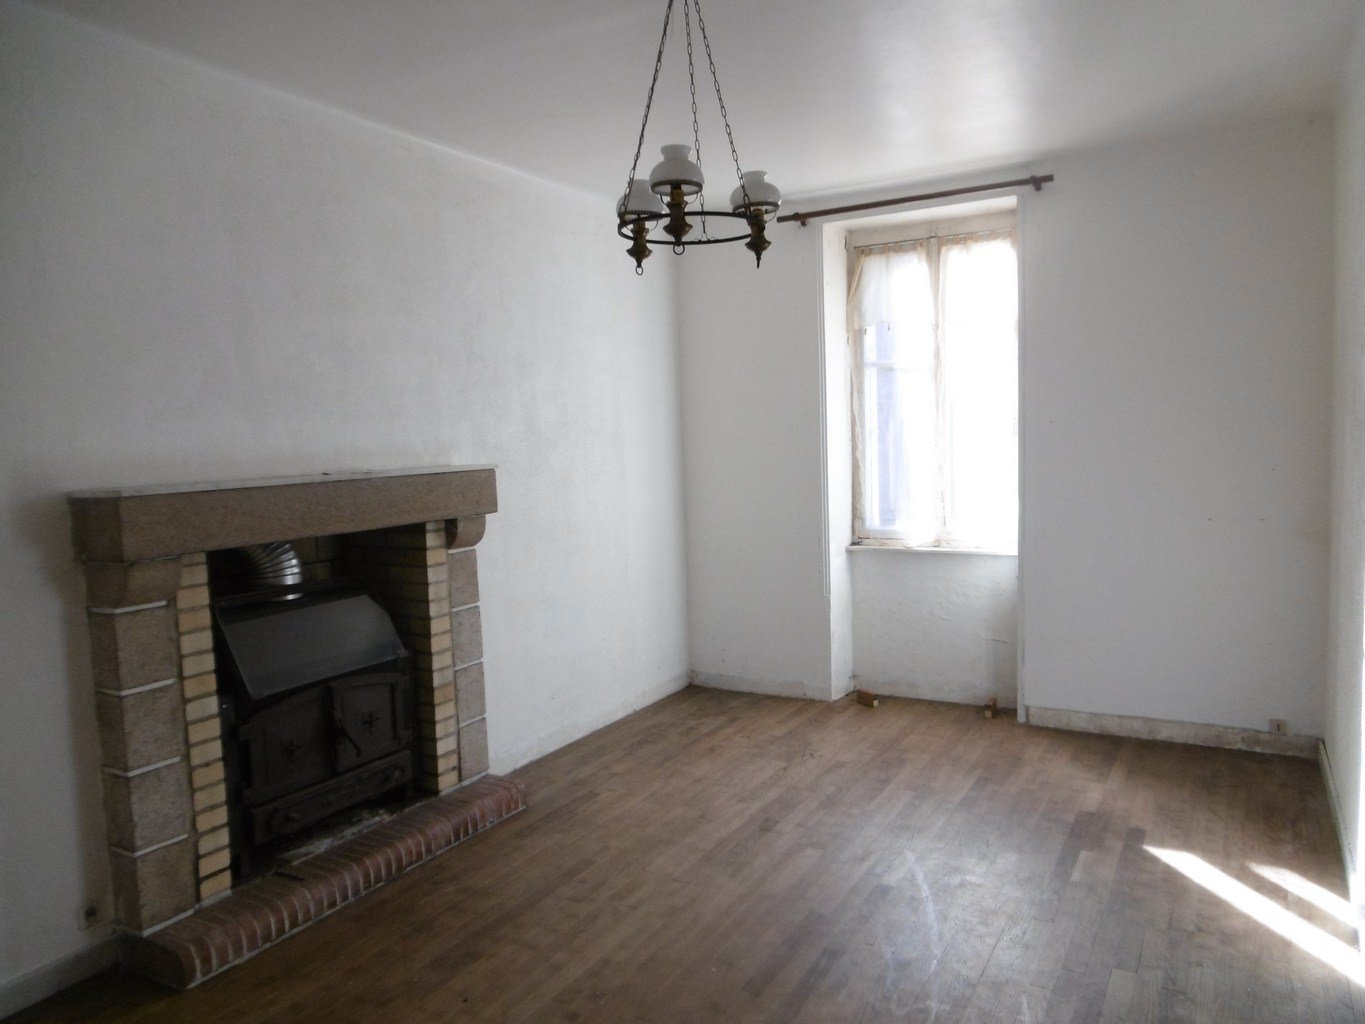 TOWN HOUSE small price